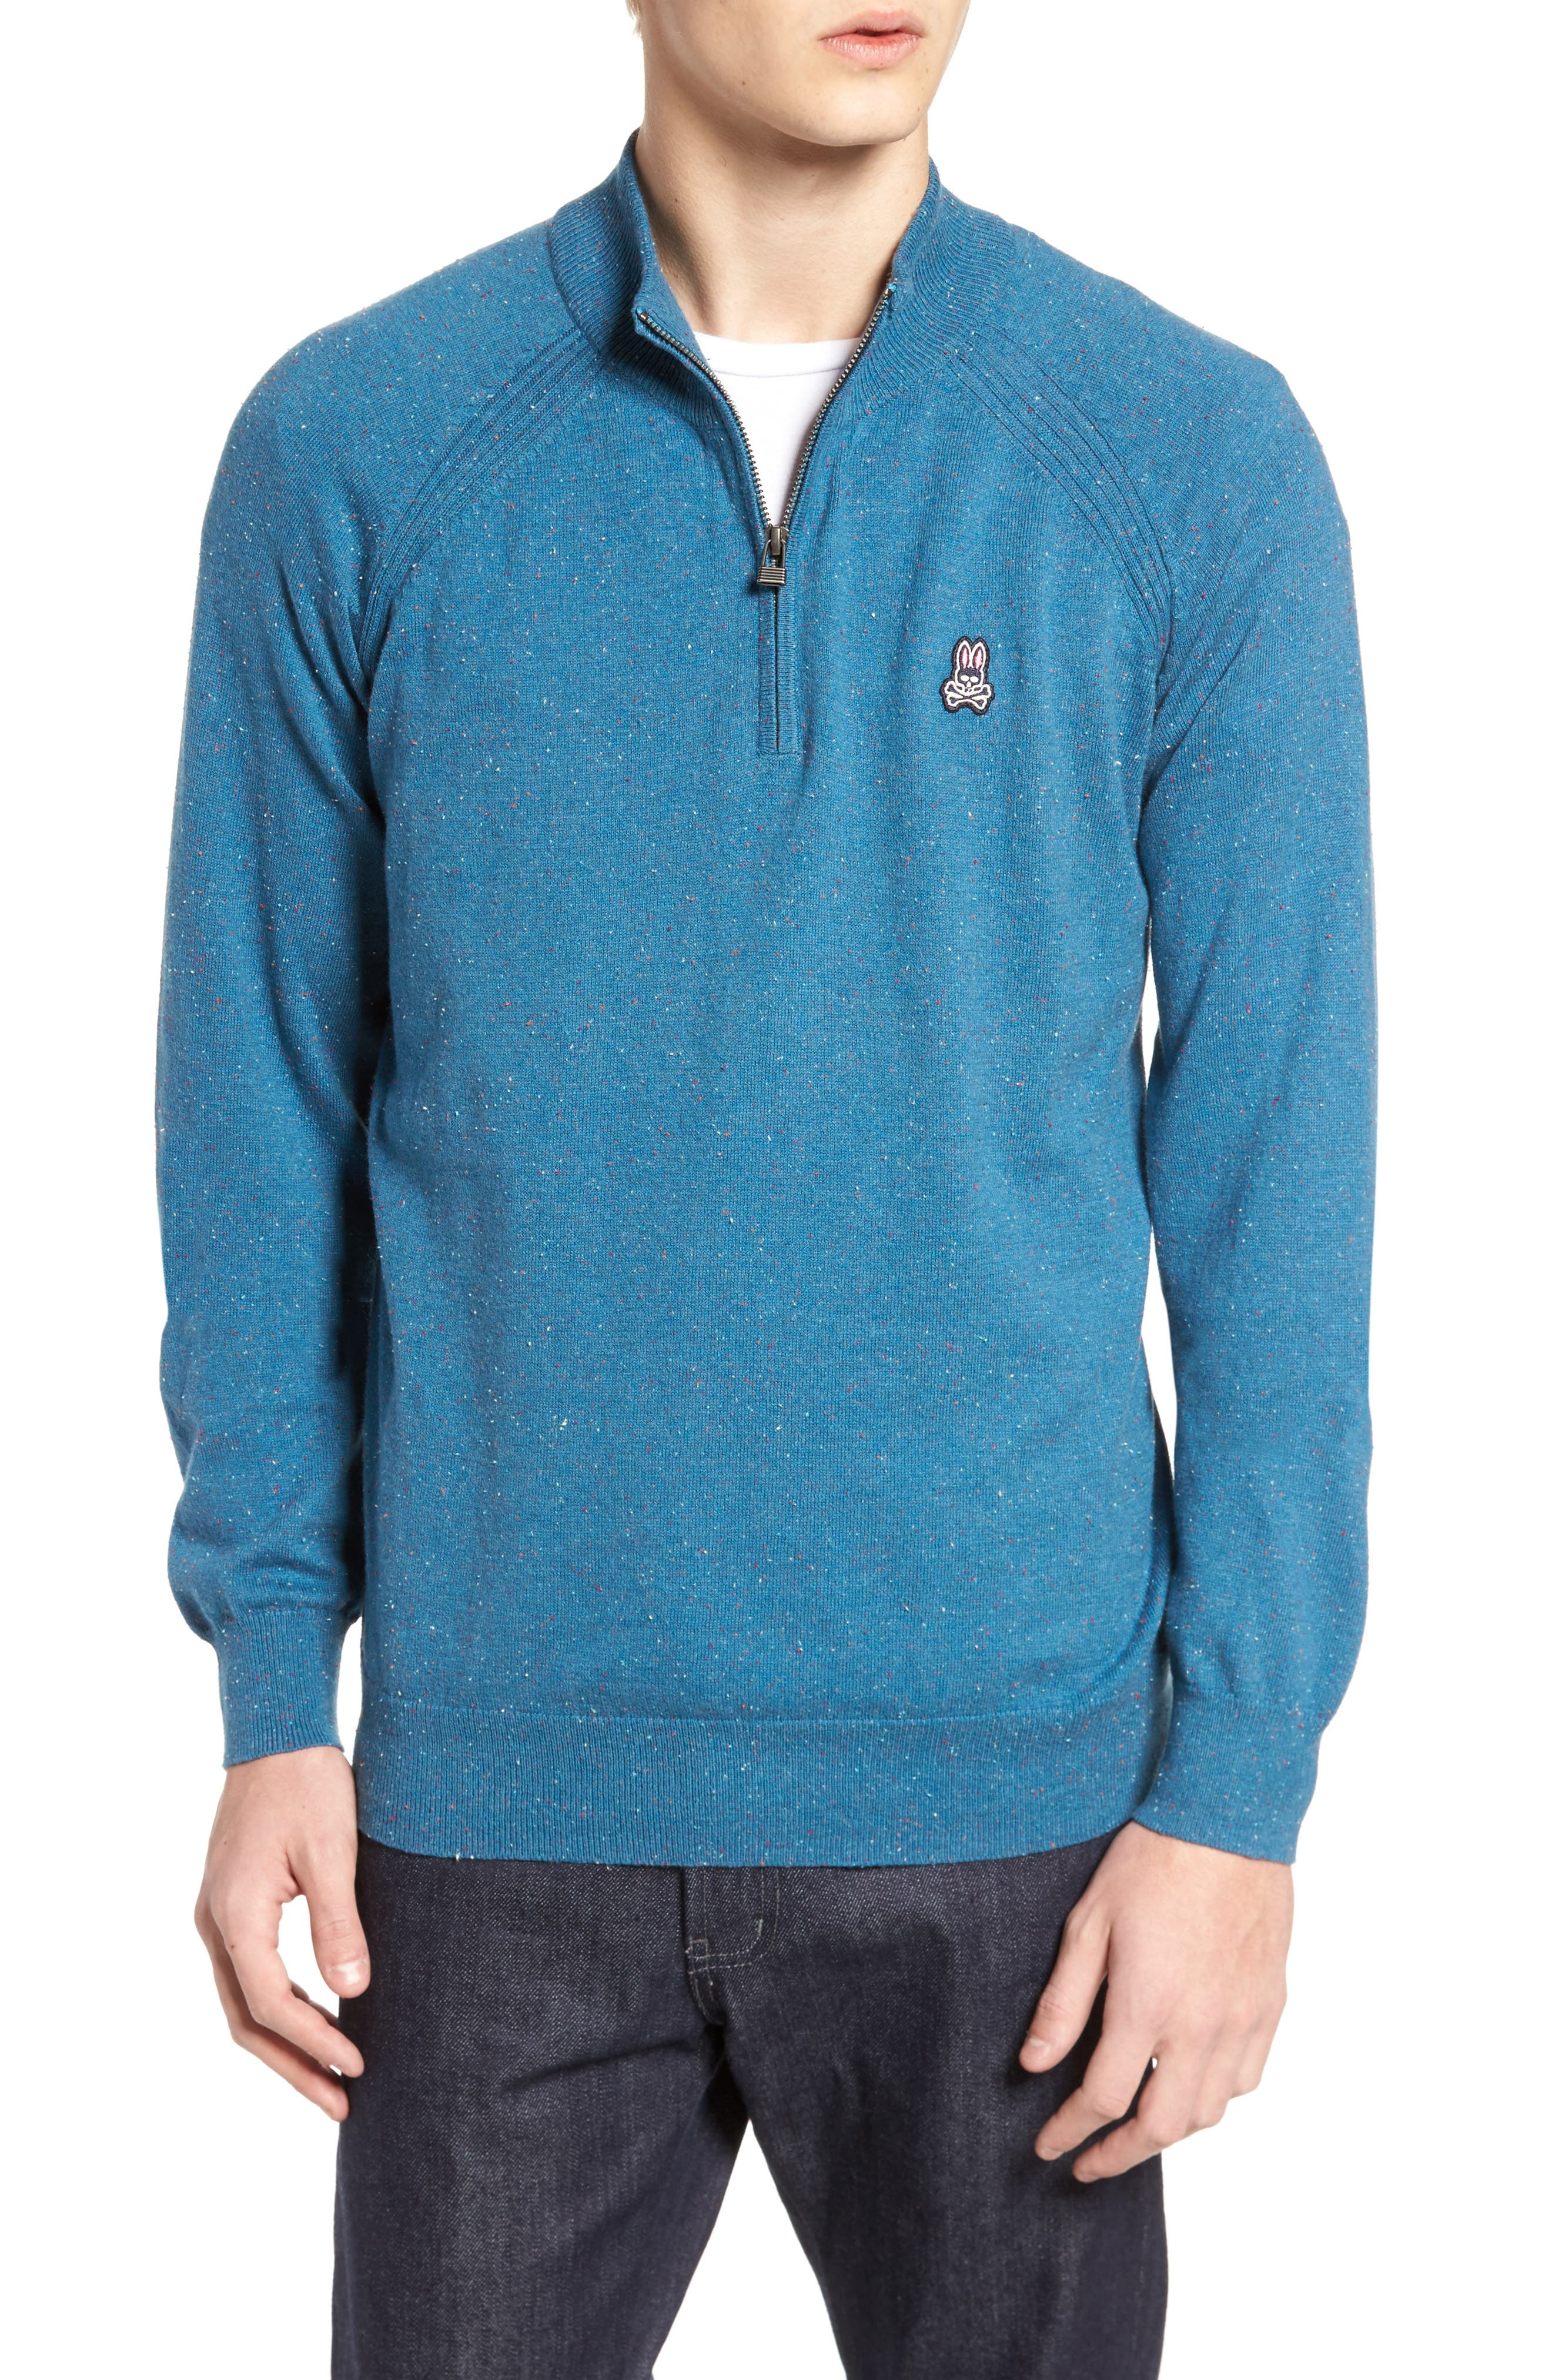 Donegal Quarter Zip Pullover,                         Main,                         color, 445